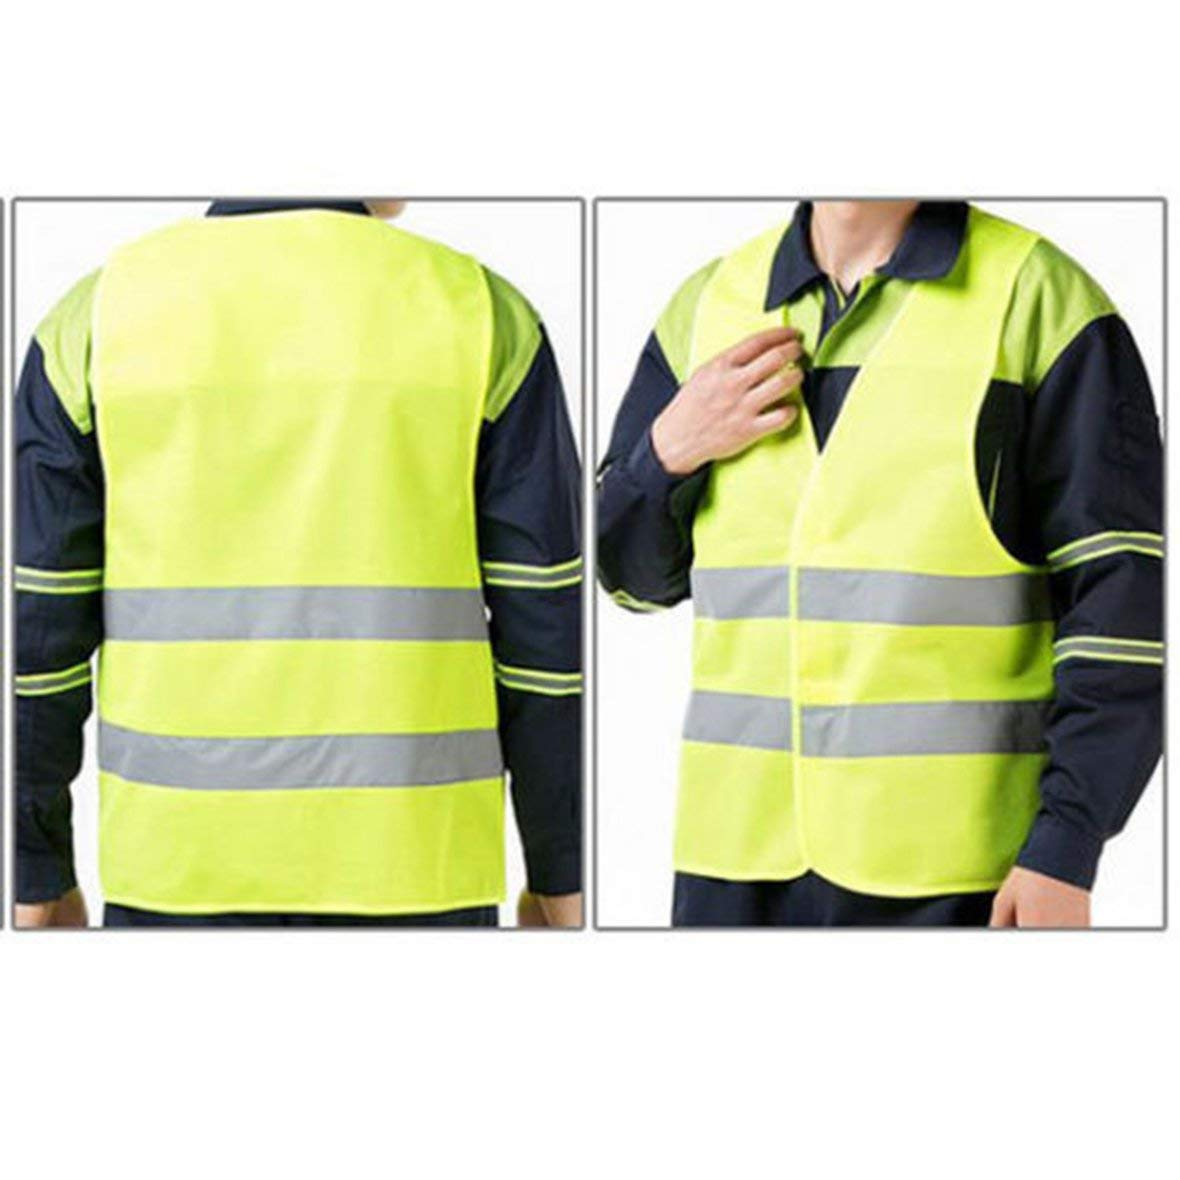 Tivolii Reflective Stripe Traffic Warning Vest Working Clothes High Visibility Protective Vest for Sanitation Worker Assistant Police